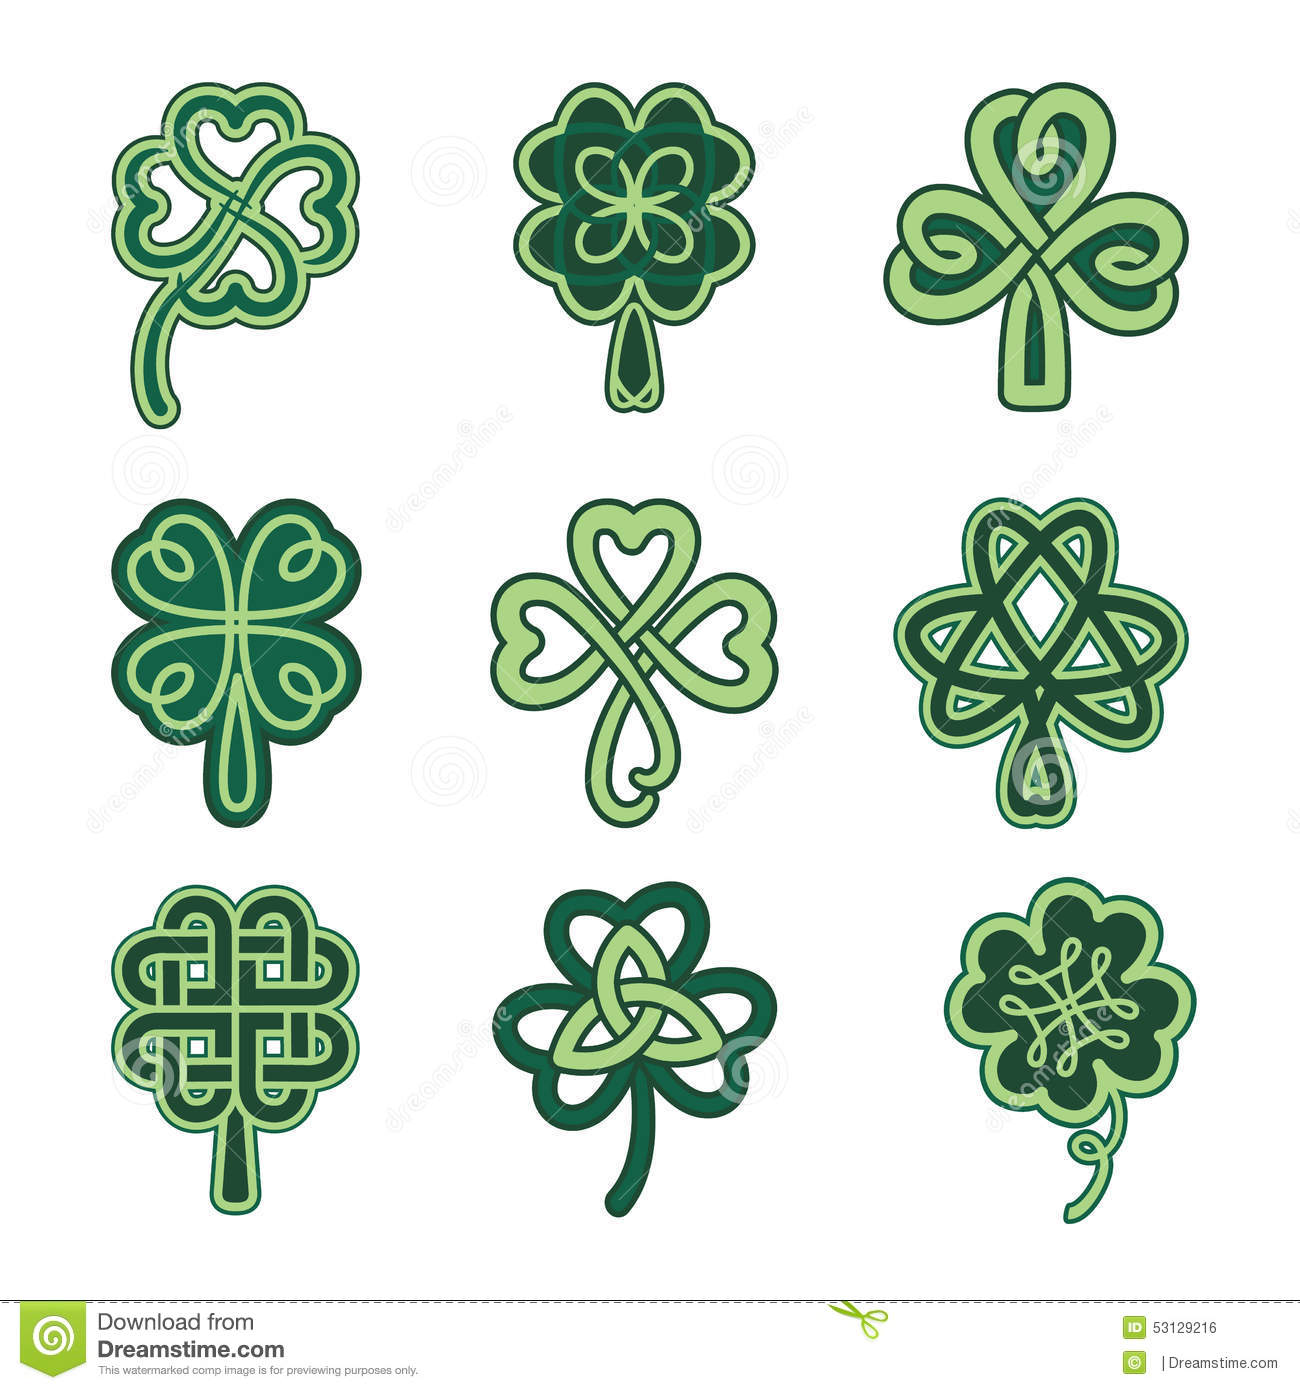 Celtic Clover Stock Vector Image: 39807847 - 1300x1390 - jpeg